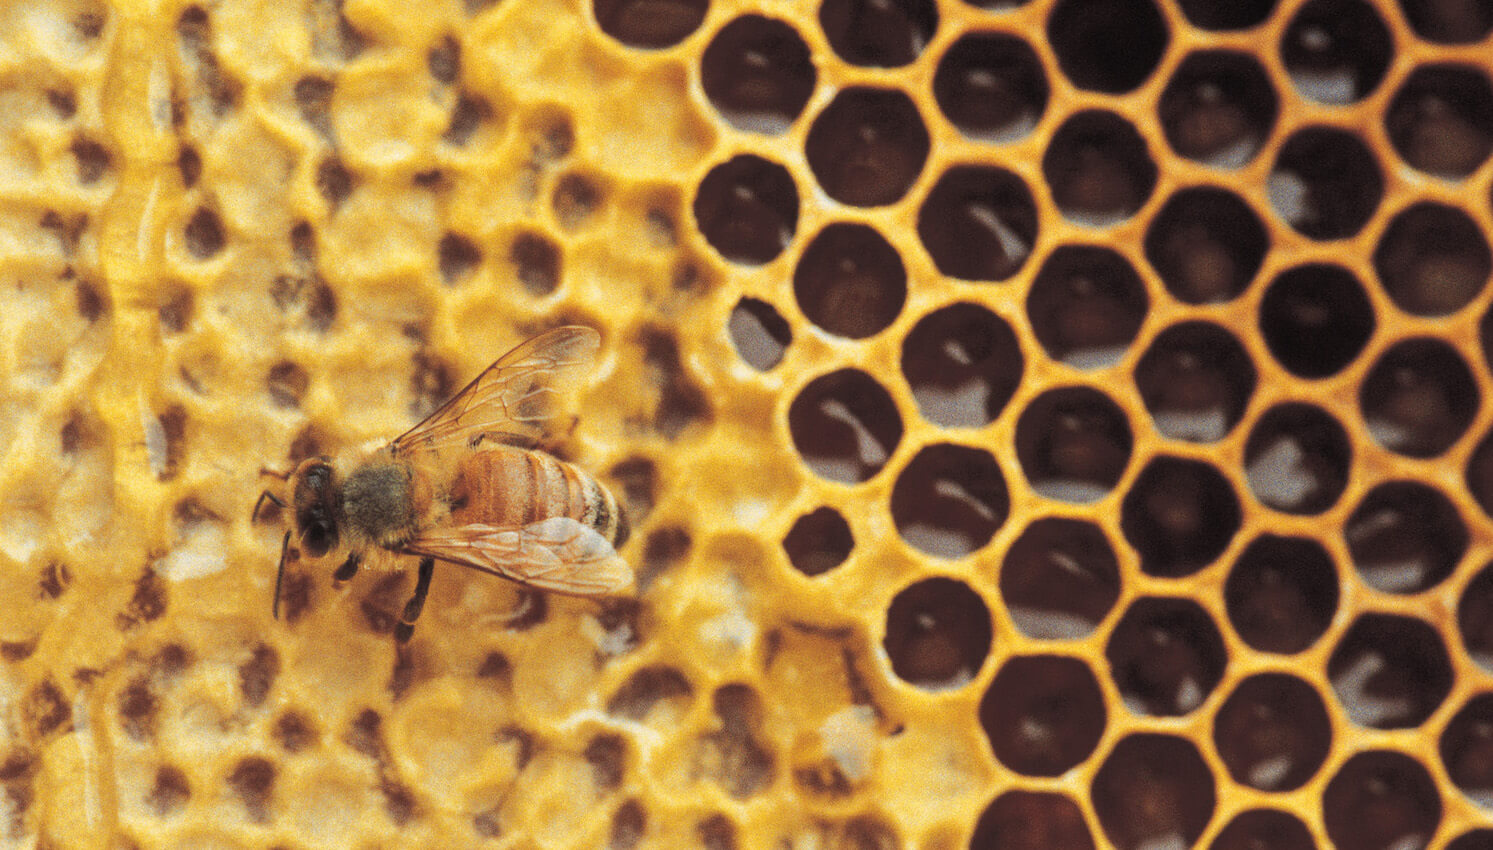 Close-up of a bee working on a honeycomb